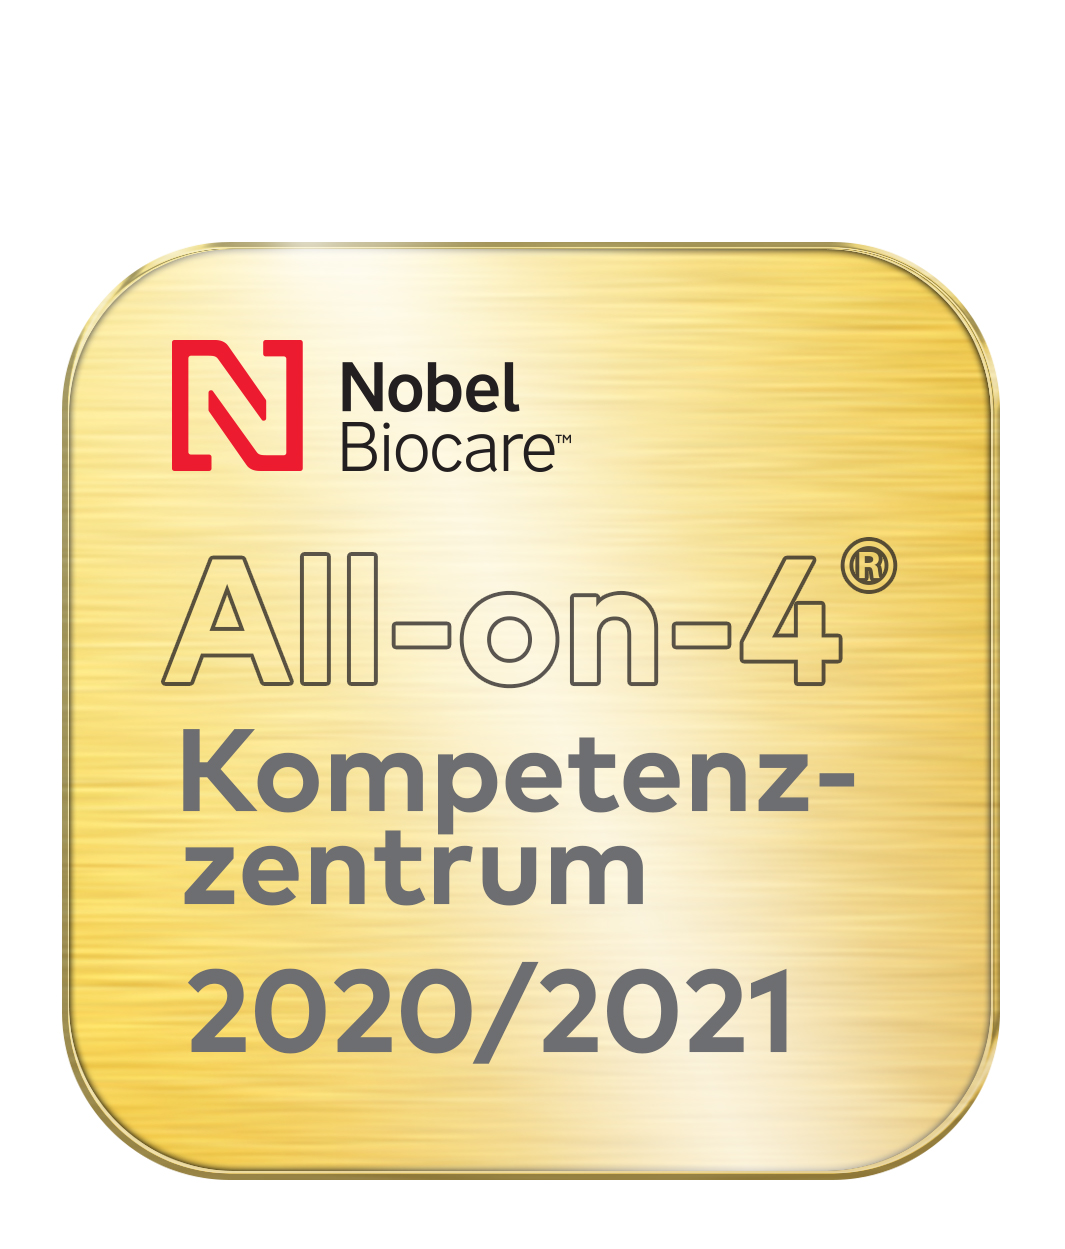 Allon4 Logo NOB 20 21